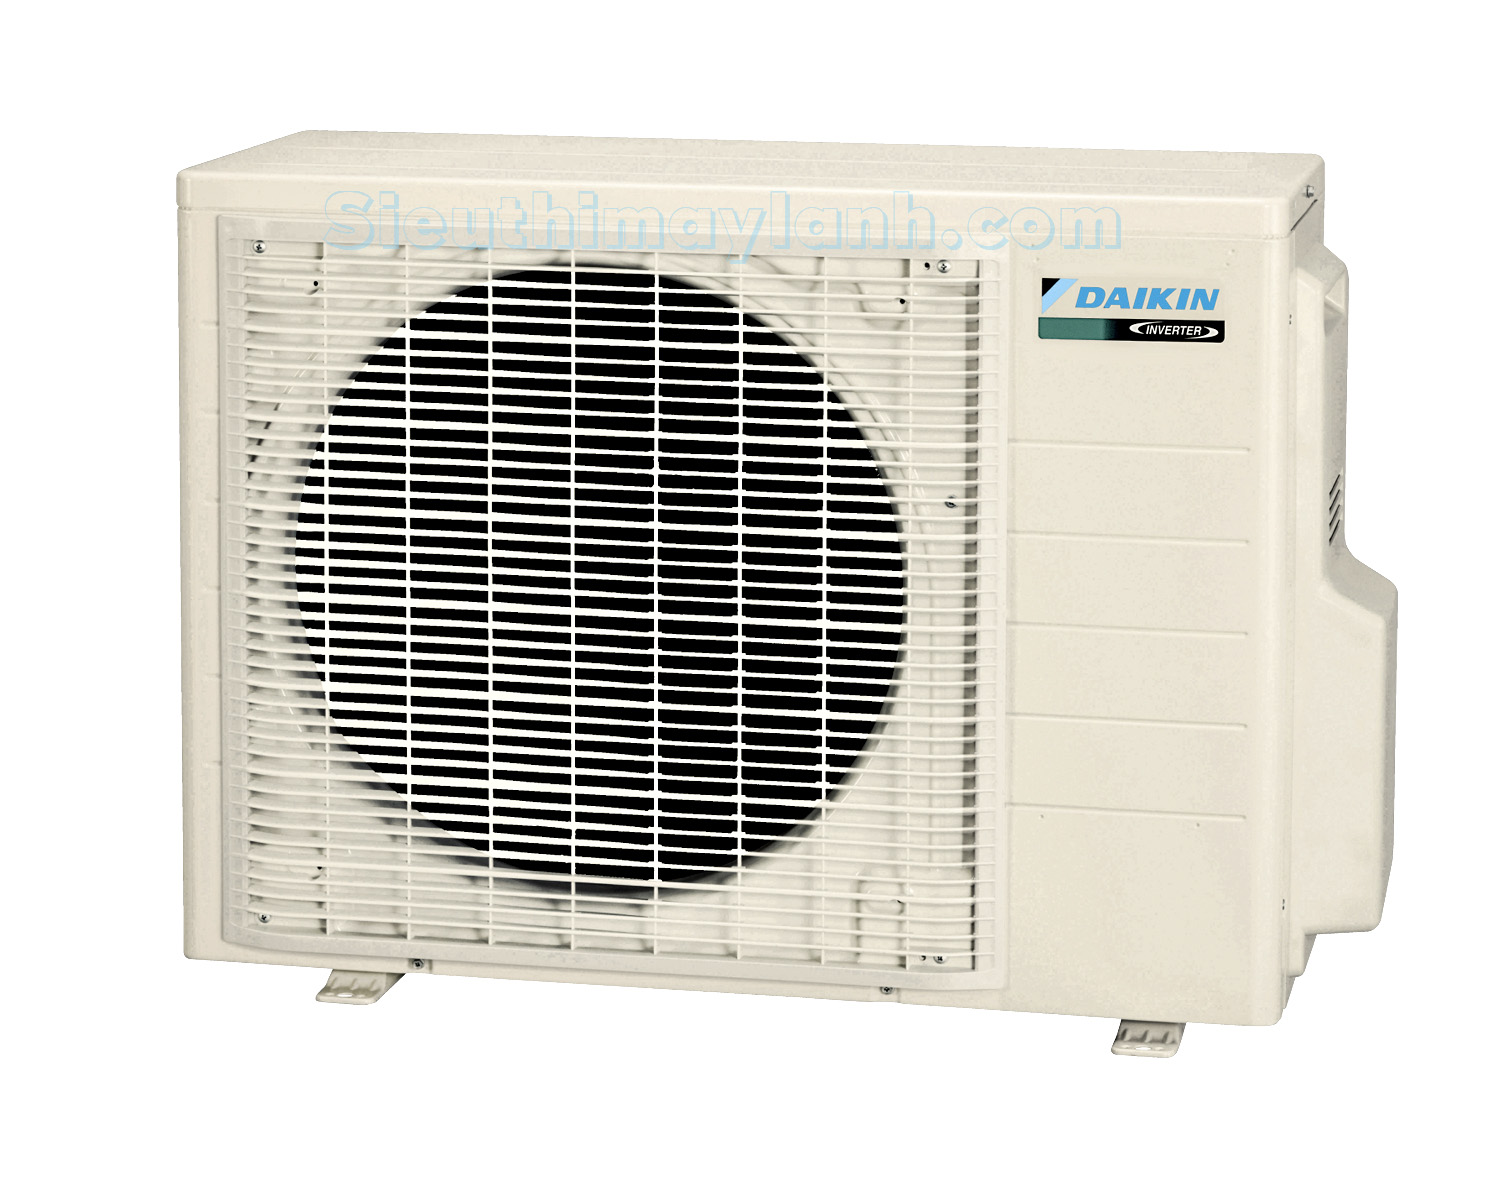 Outdoor Unit AC Multi Daikin 3MKS71ESG (3.0Hp) Inverter